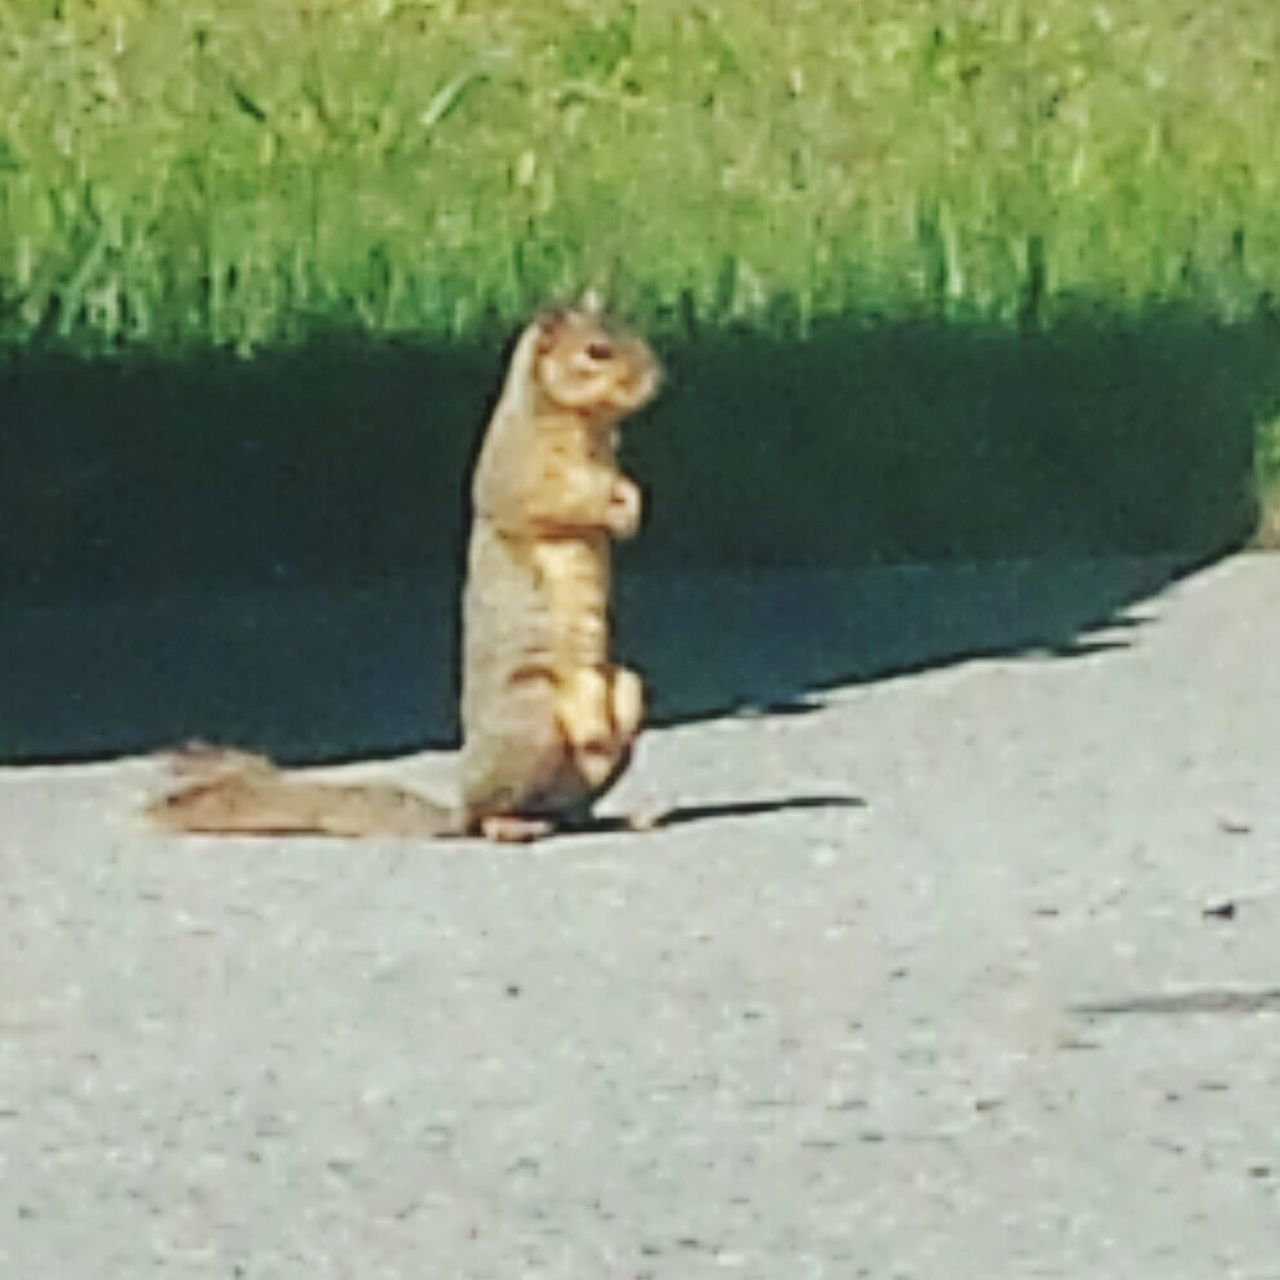 Squirrel at the End of the Street Squirrel Wildlife Anmial Rodent Sitting Pretty Sitting Alone Squirrel Posing